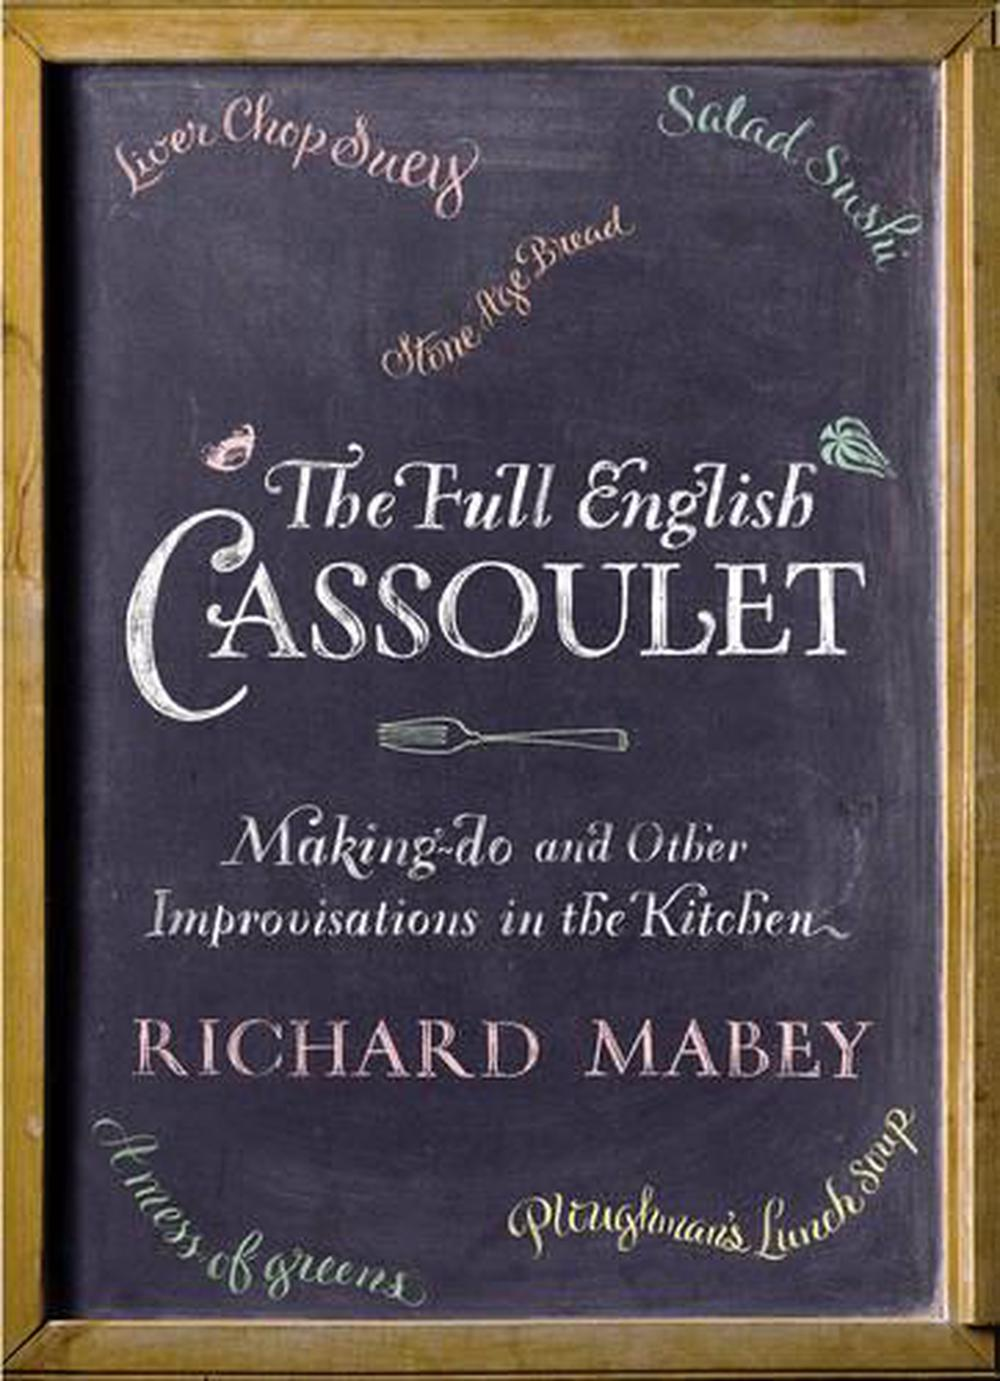 The Full English Cassoulet